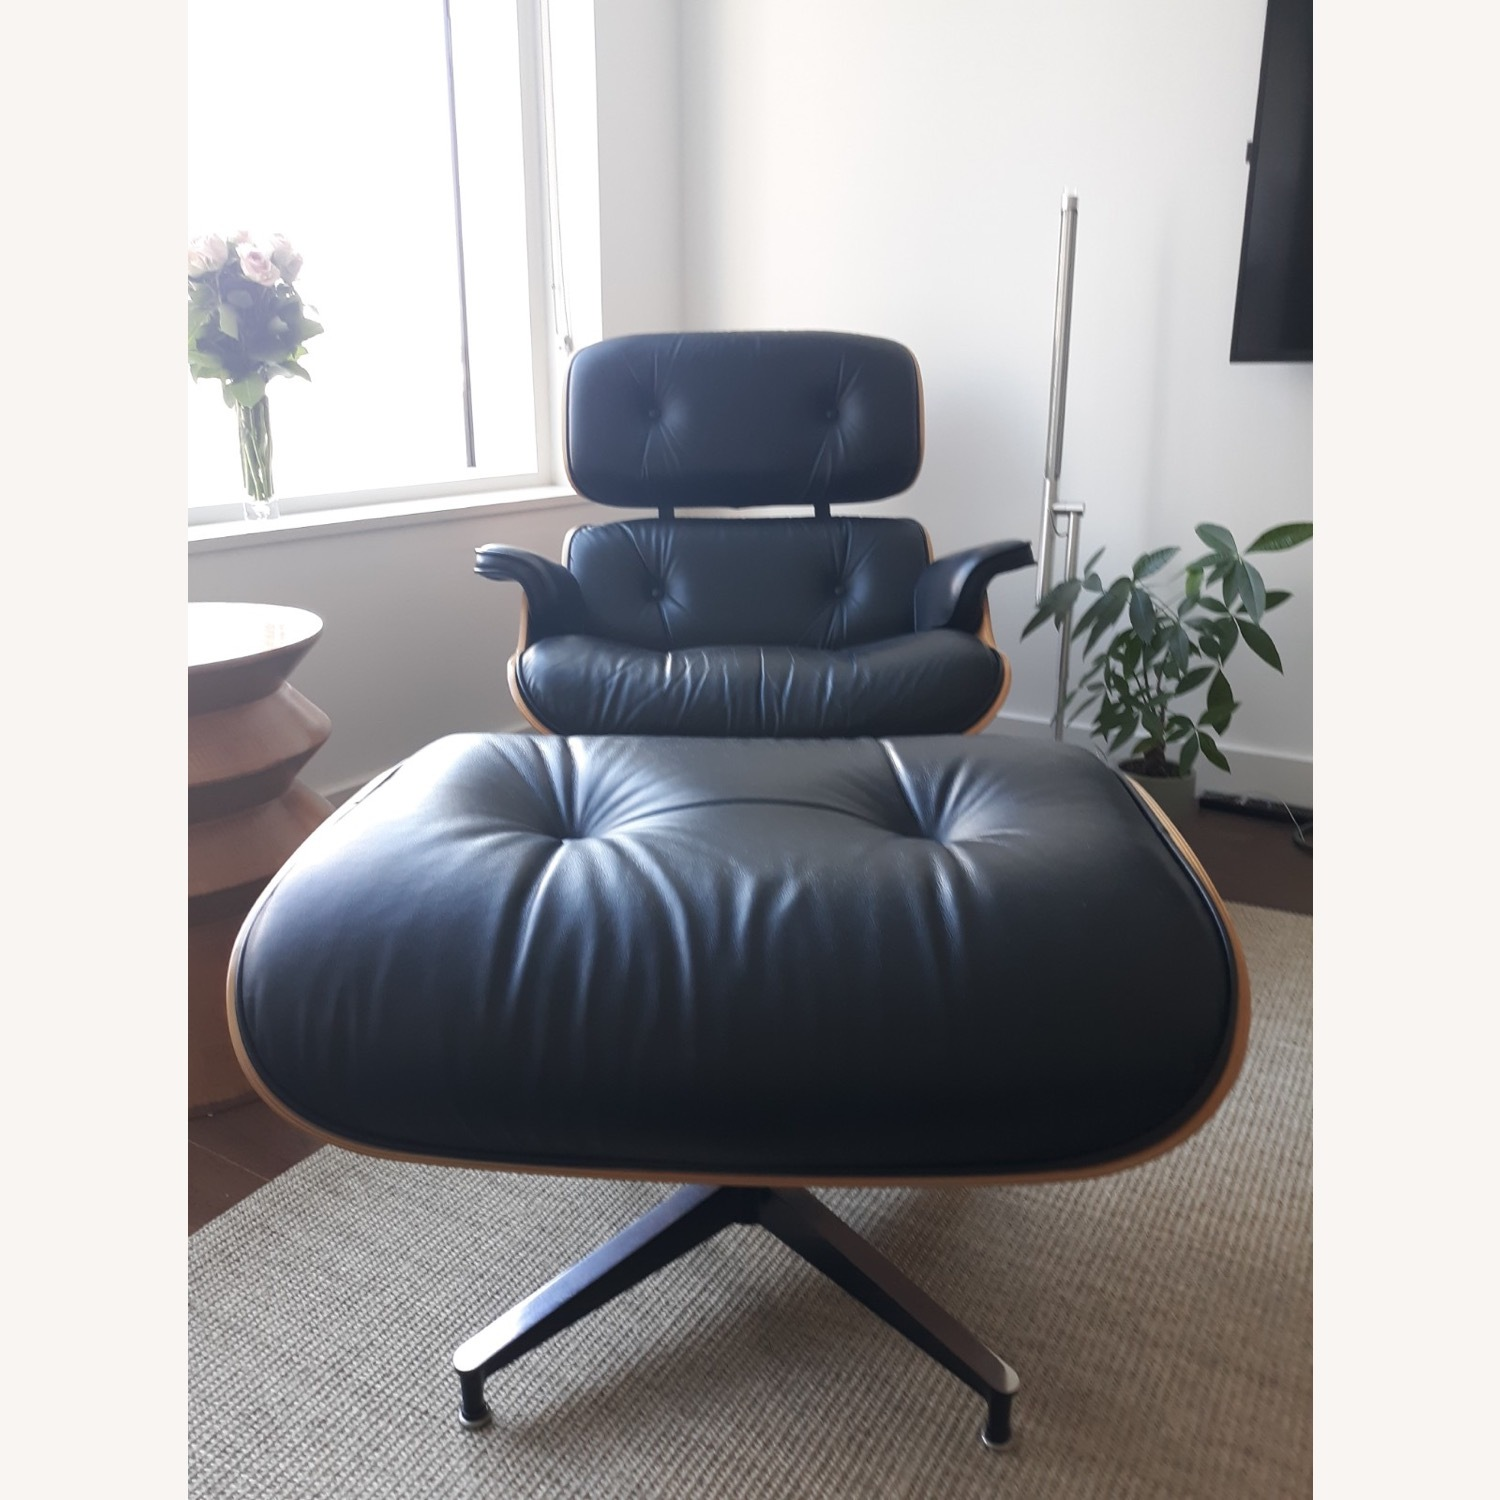 Herman Miller Eames Lounge Chair and Ottoman - image-9